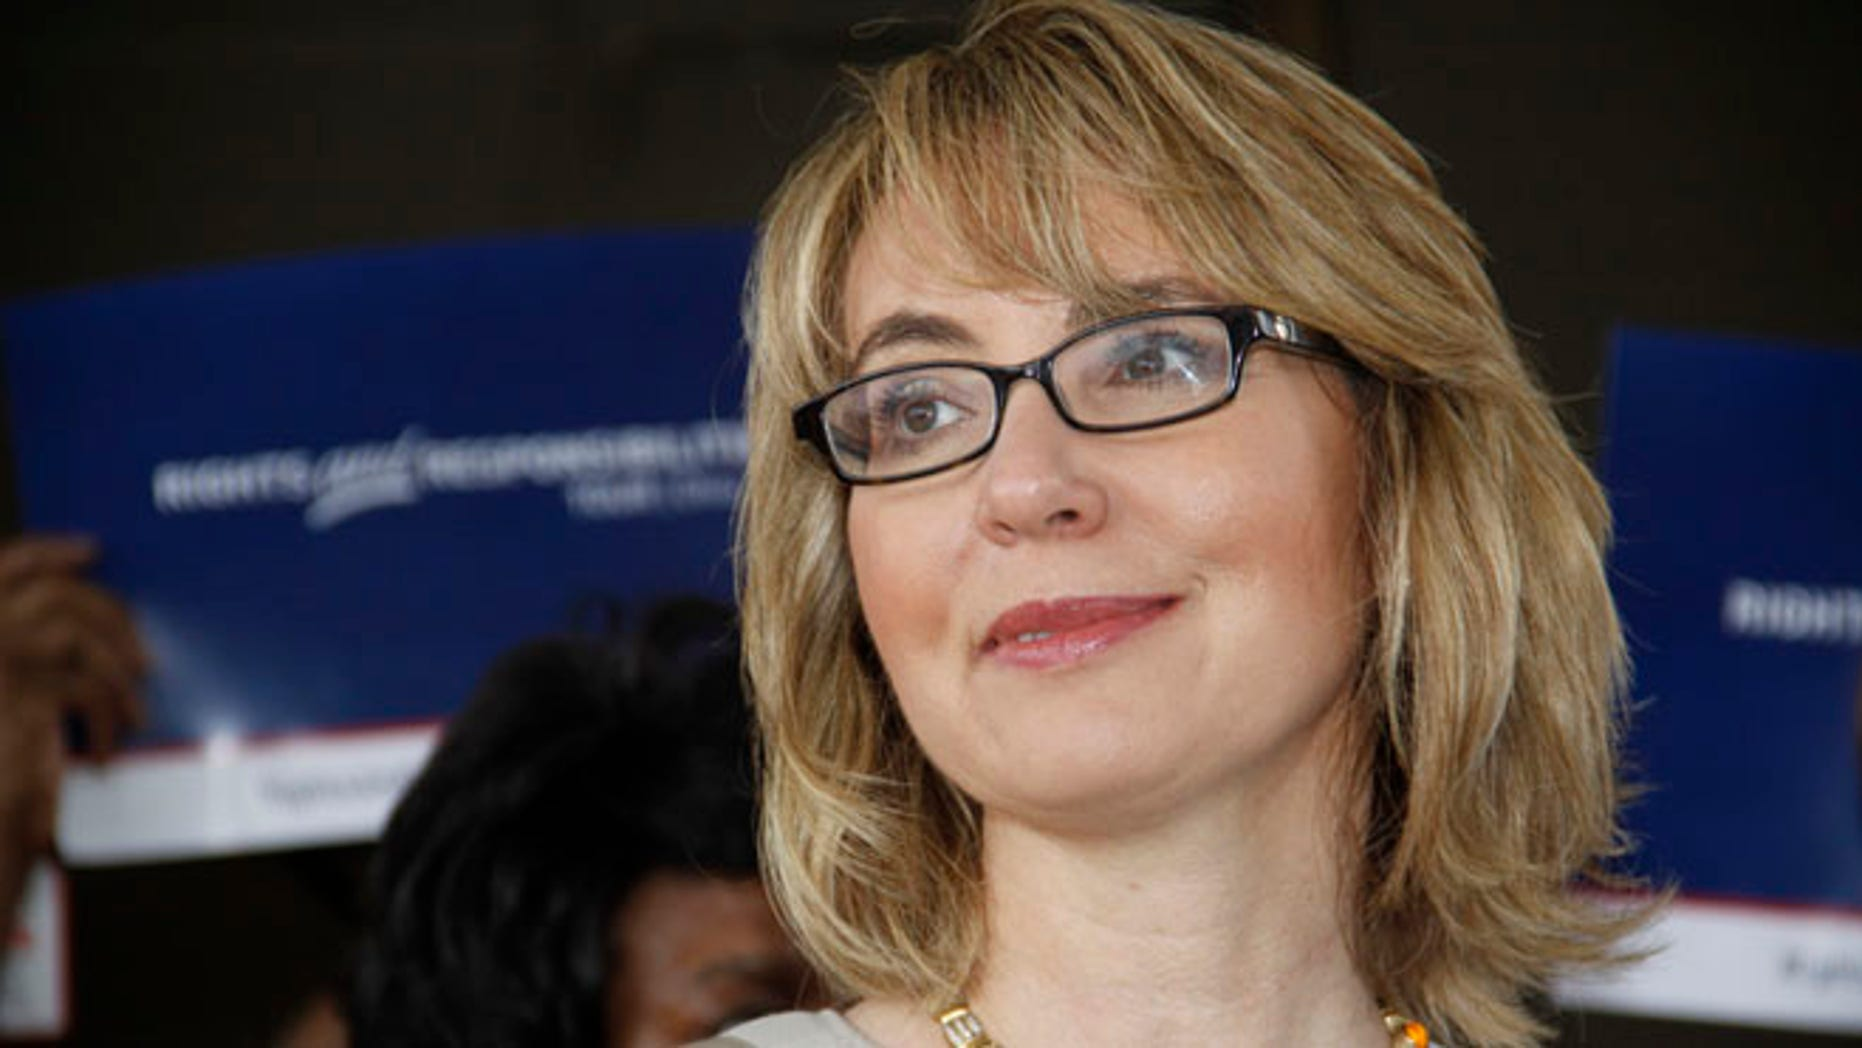 July 4, 2013: Former U.S. Rep. Gabrielle Giffords talks to supporters before she and husband, former astronaut Mark Kelly, take part in a parade in Northside, a suburb of Cincinnati.